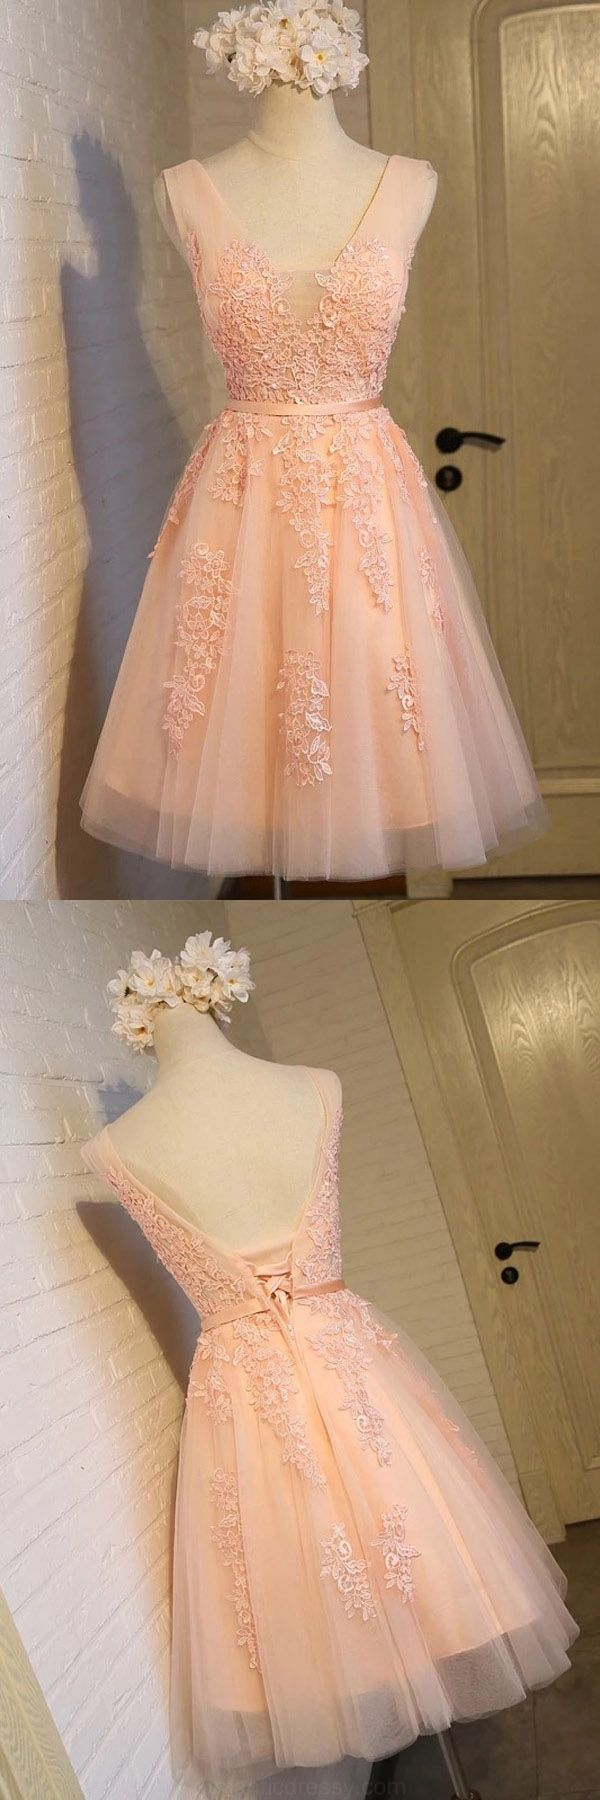 Cute Short Prom Dresses, Tulle Prom Dresses, Prom Dresses Short, #shortpromdresses, Short Prom Dresses, Prom dresses Sale, Prom Dresses On Sale, Knee Length Prom Dresses, Cute Prom Dresses